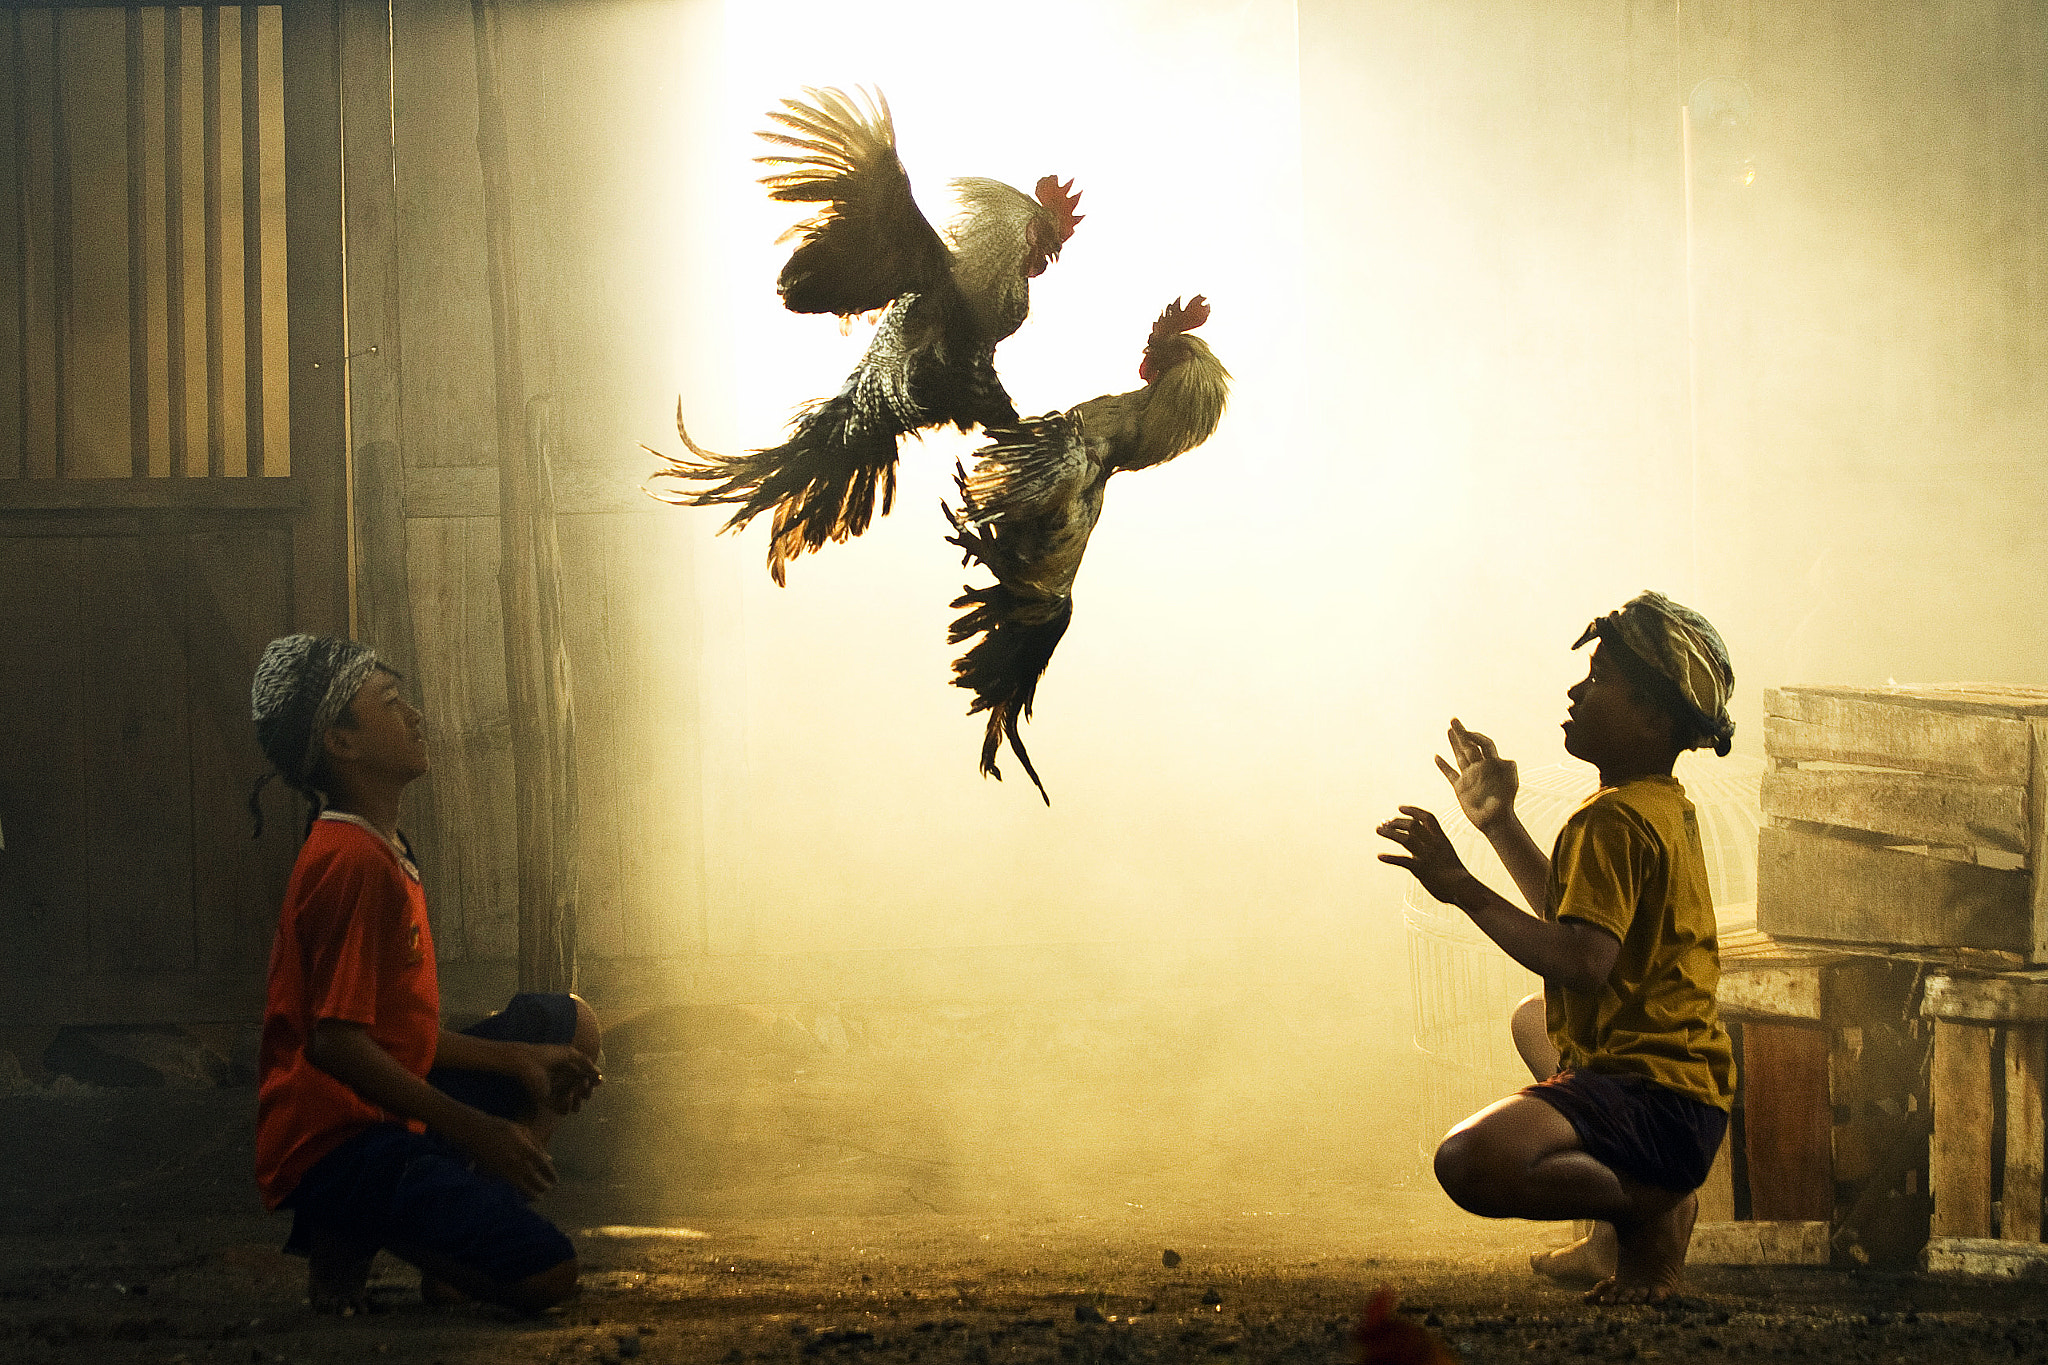 Photograph Rooster Fighting by Didik Harianto on 500px